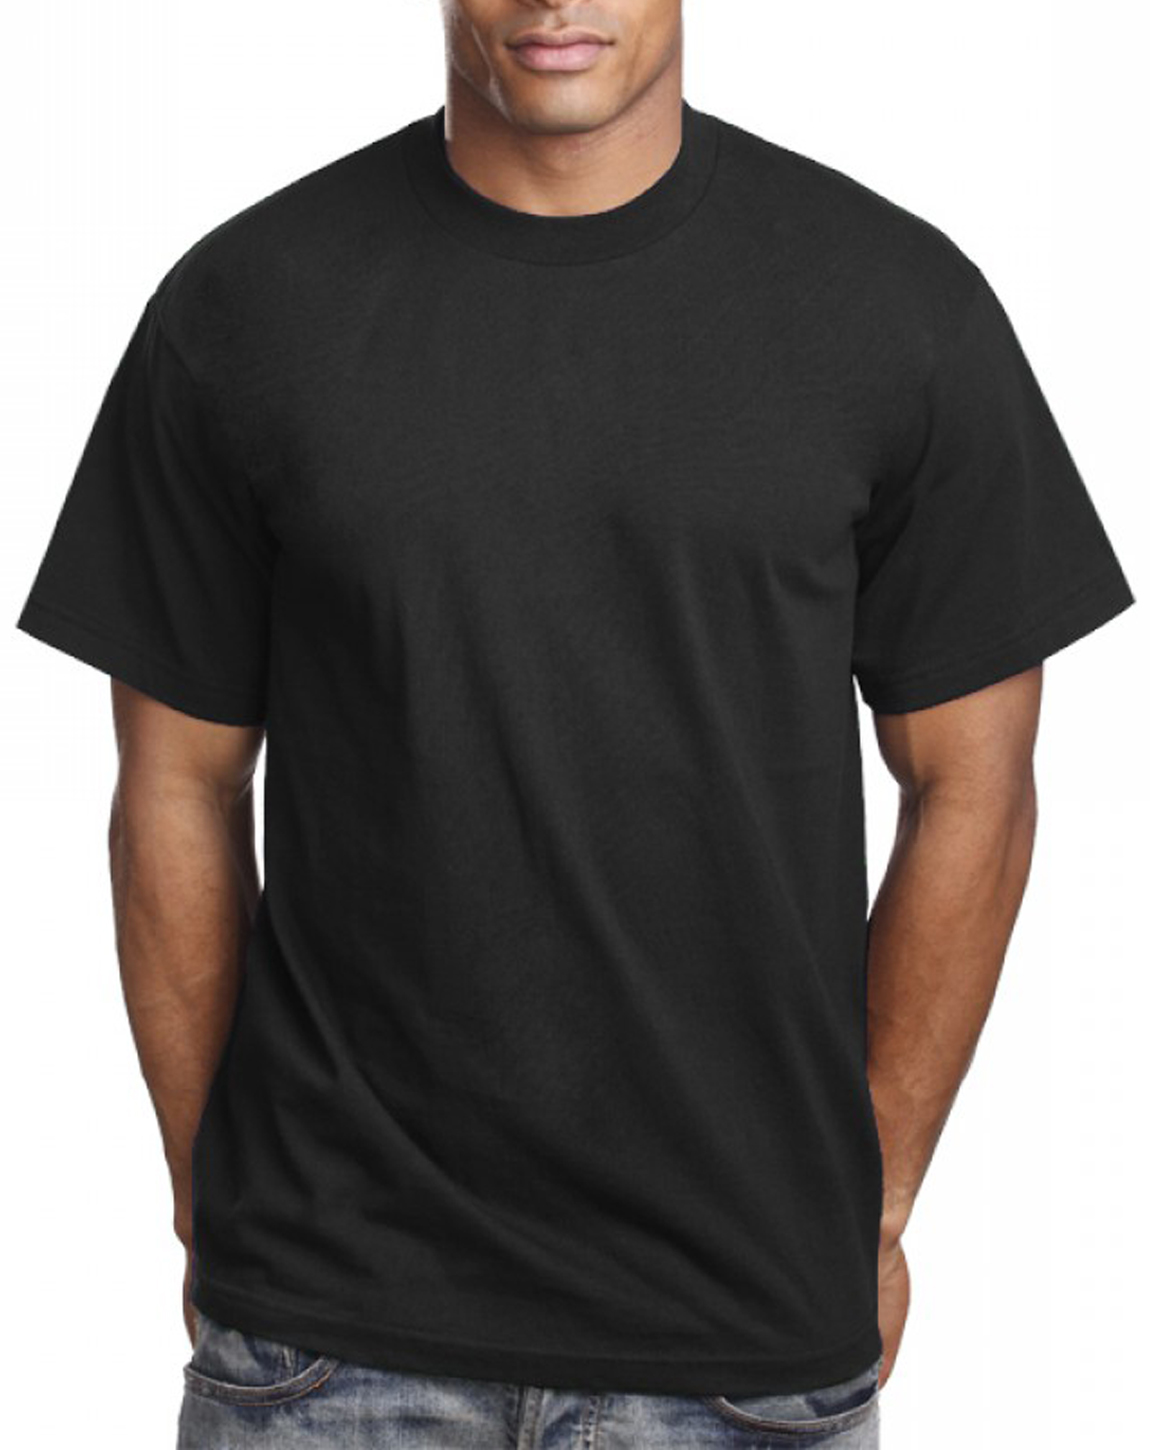 black t shirt model back - photo #6